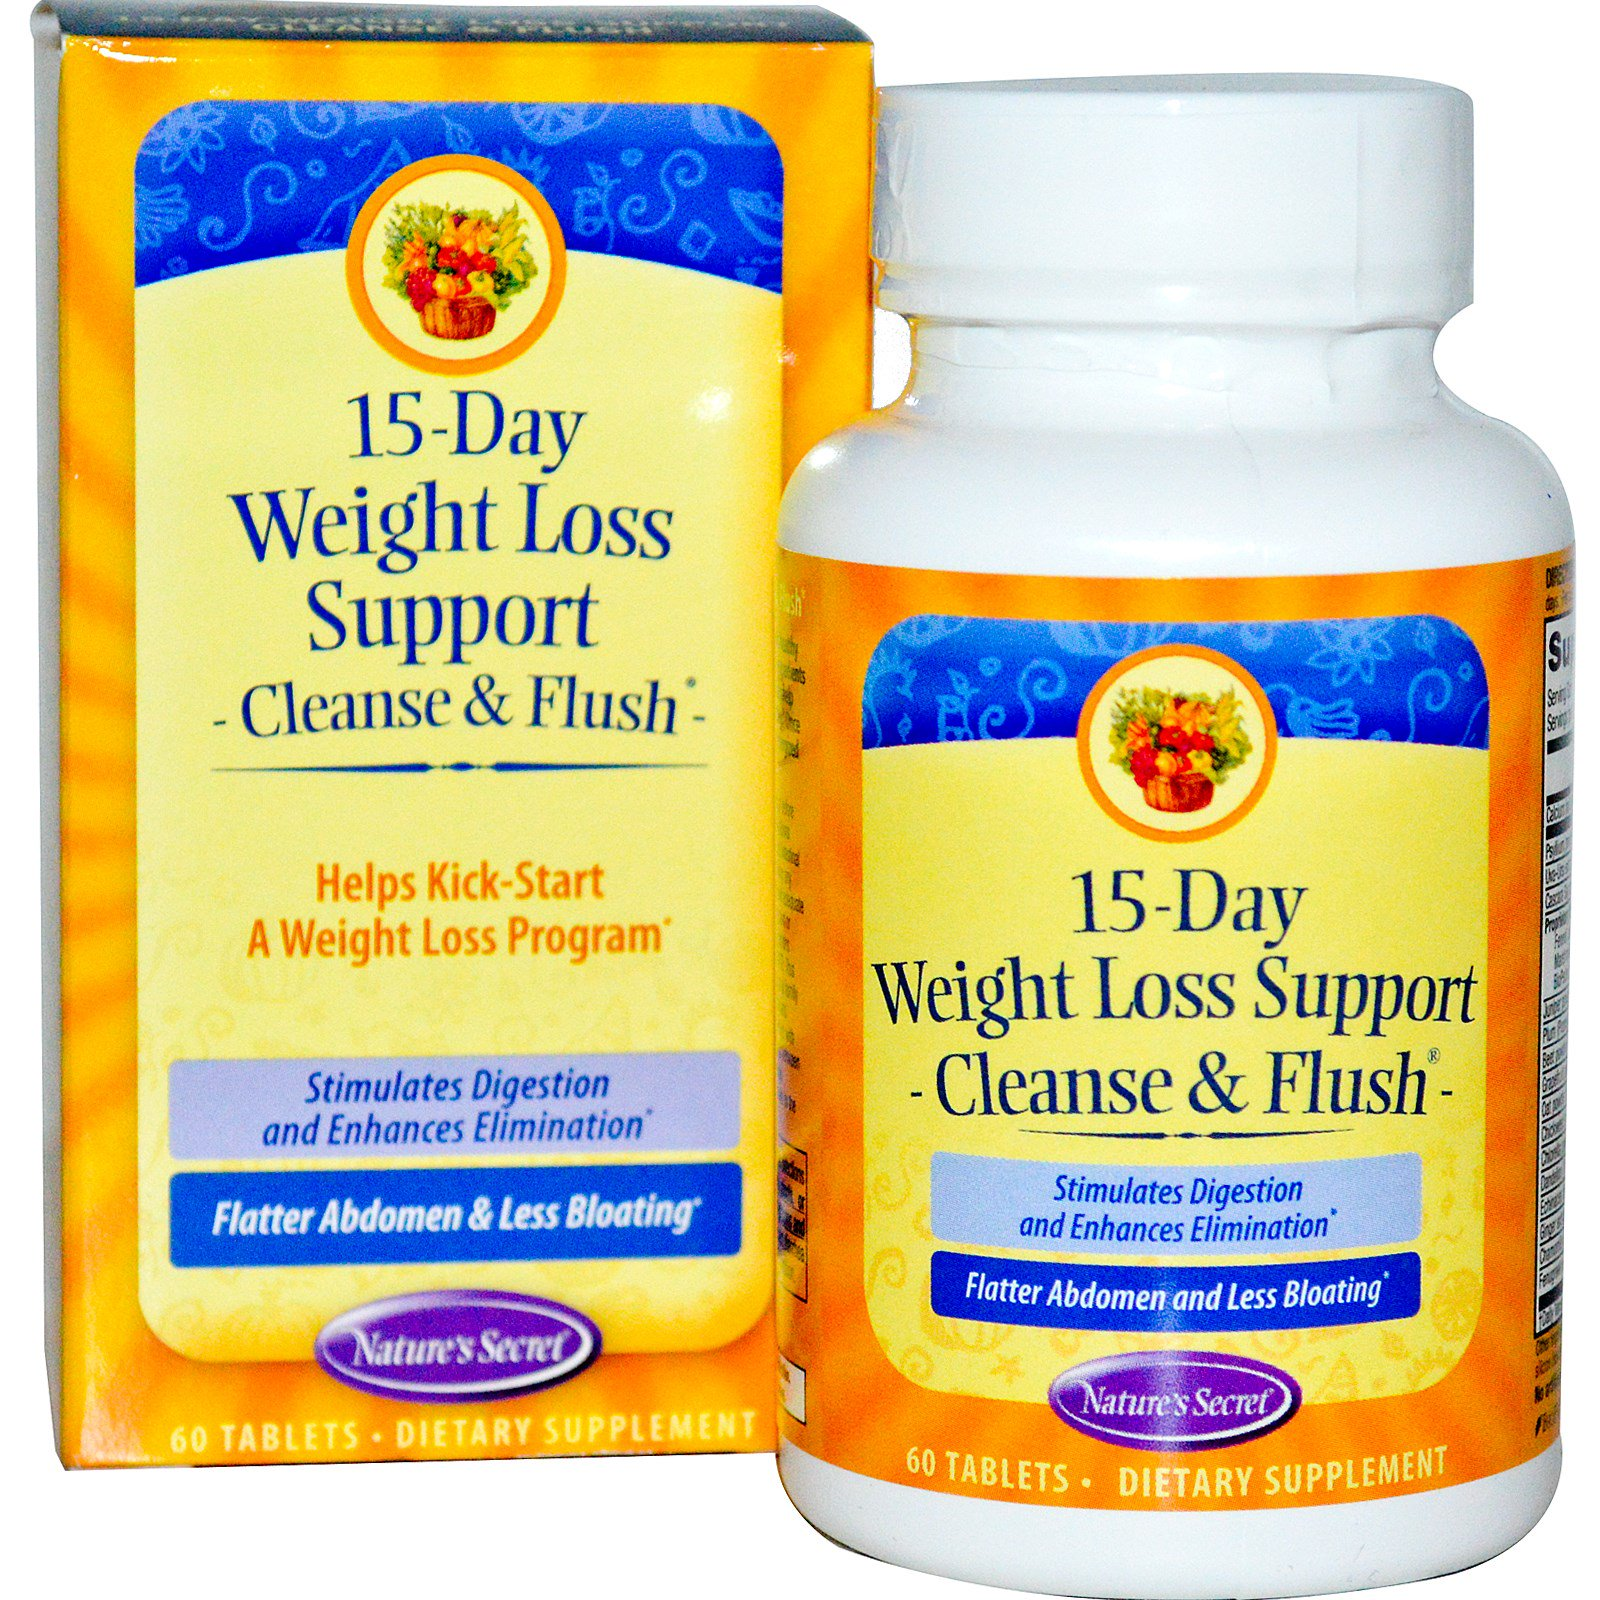 weight loss programs west palm beach fl